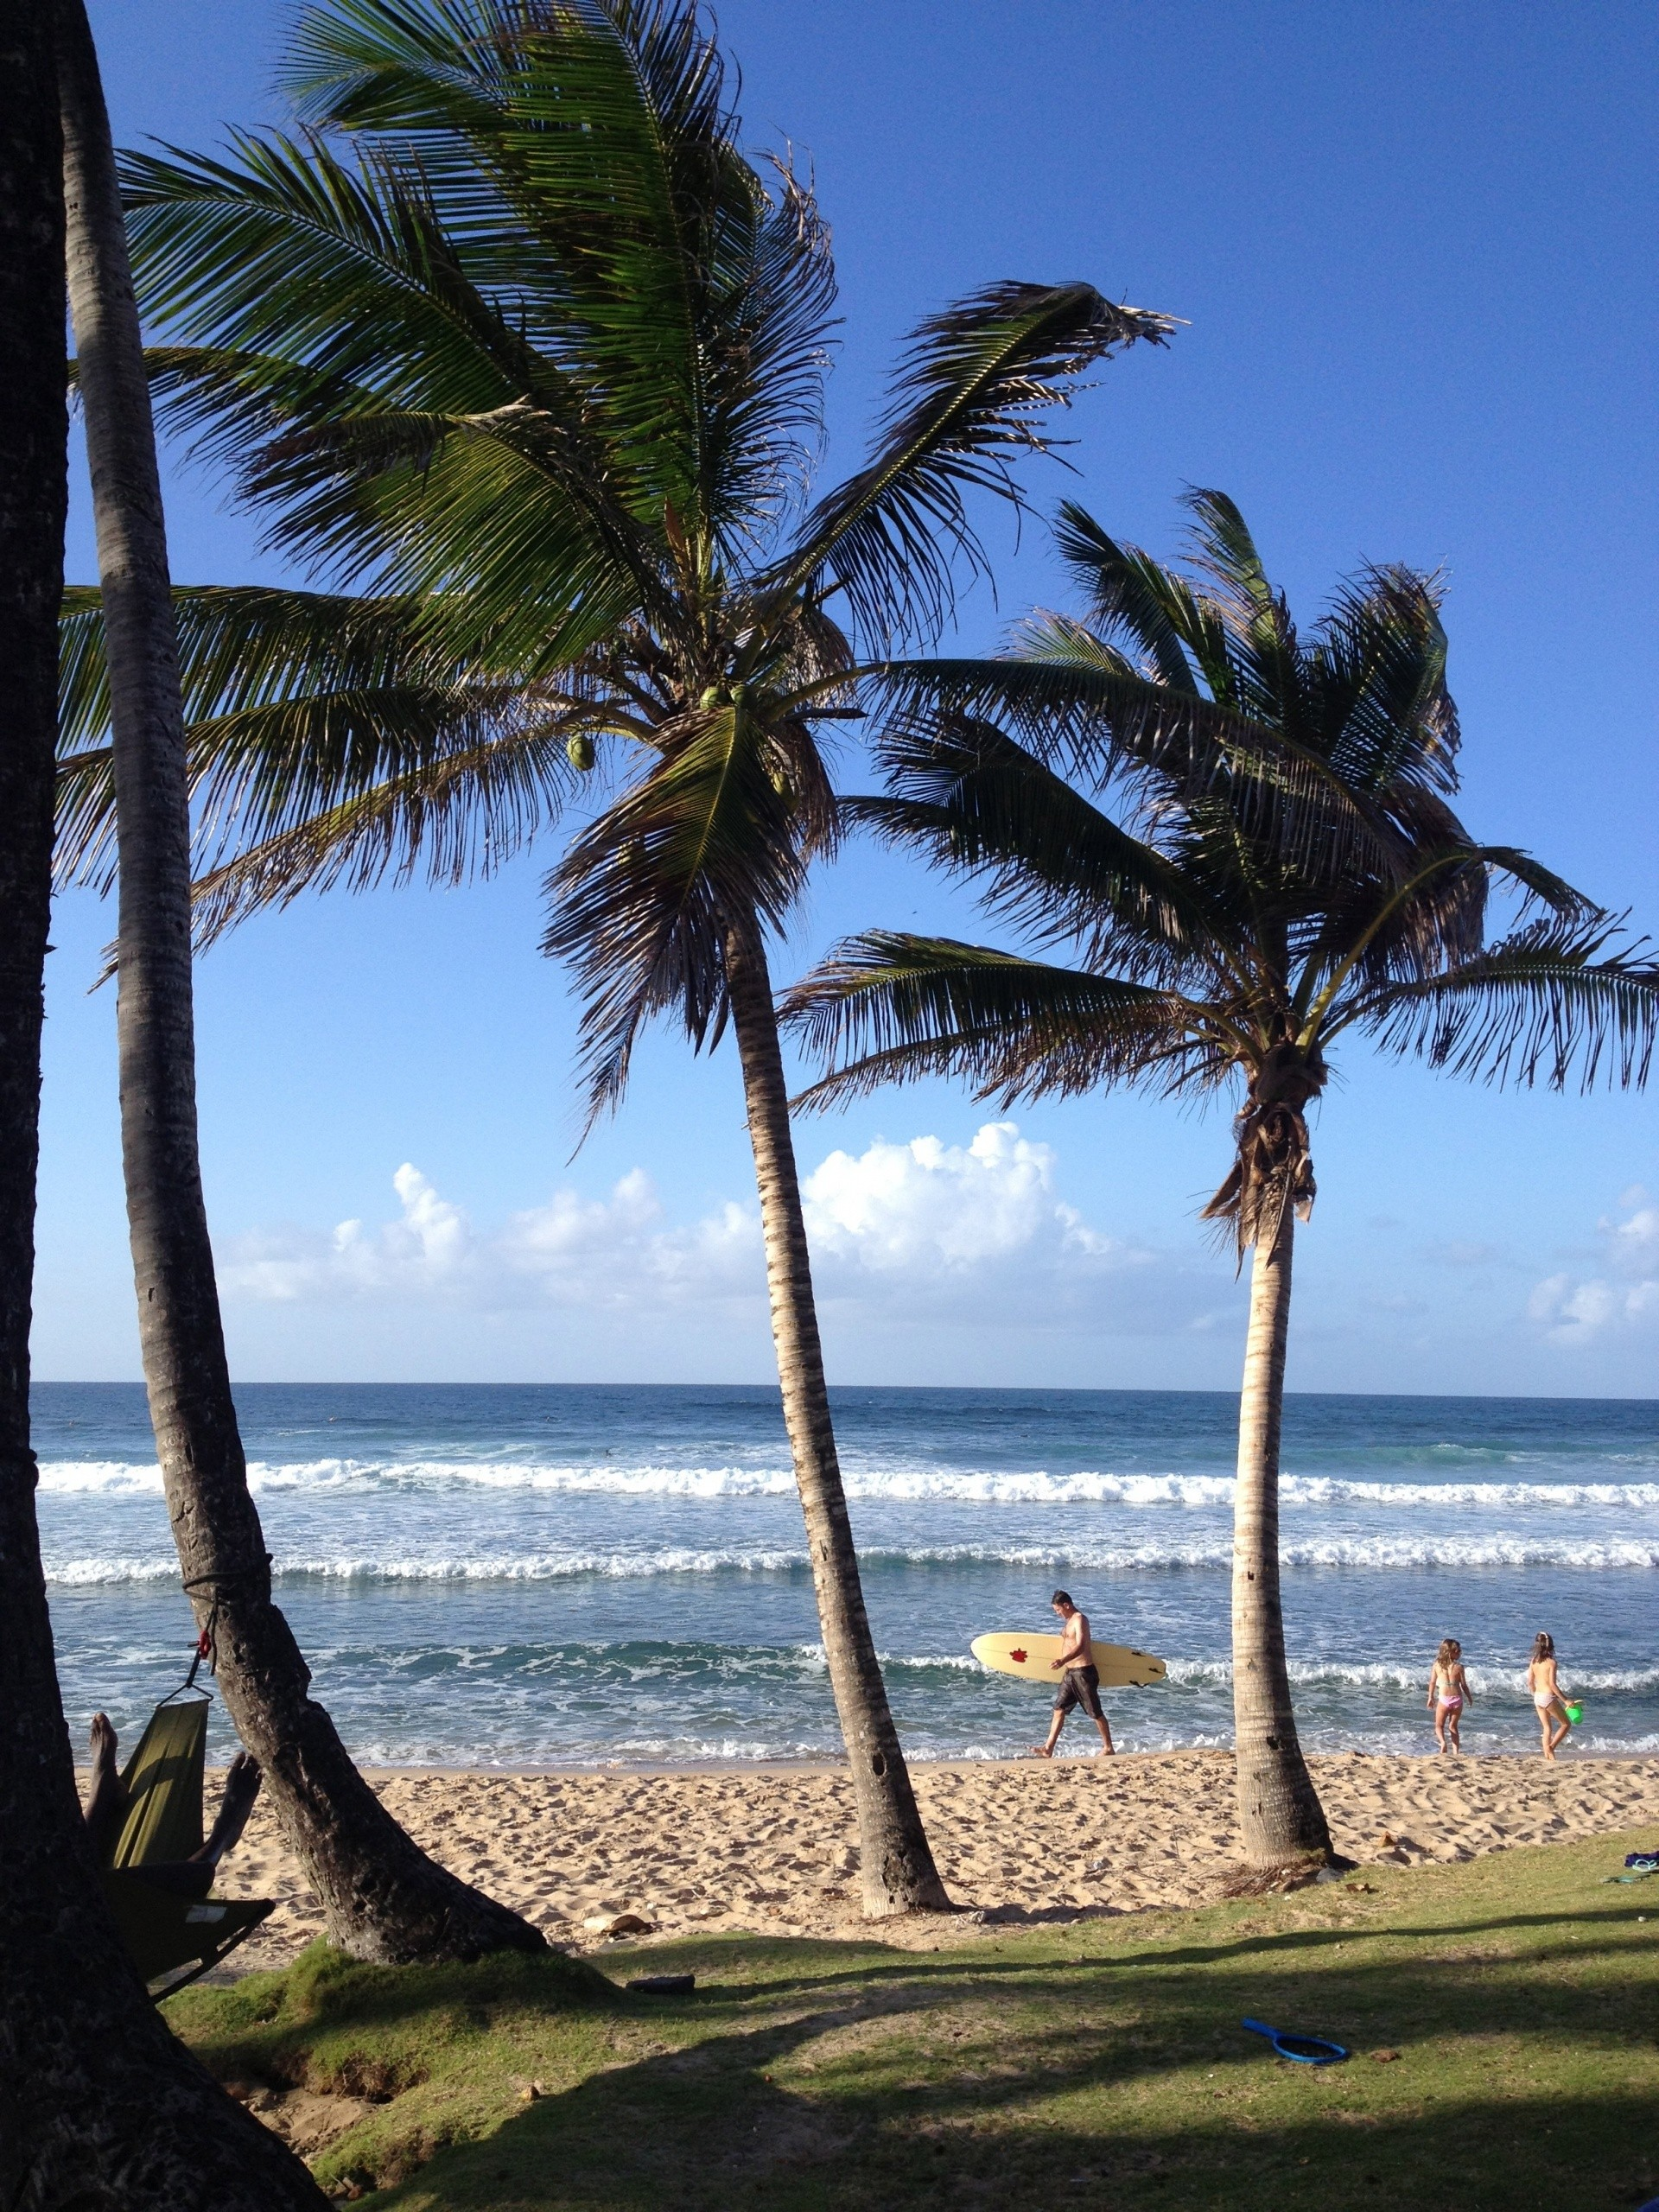 Ride The Tide Surf School Barbados's photo of Parlors